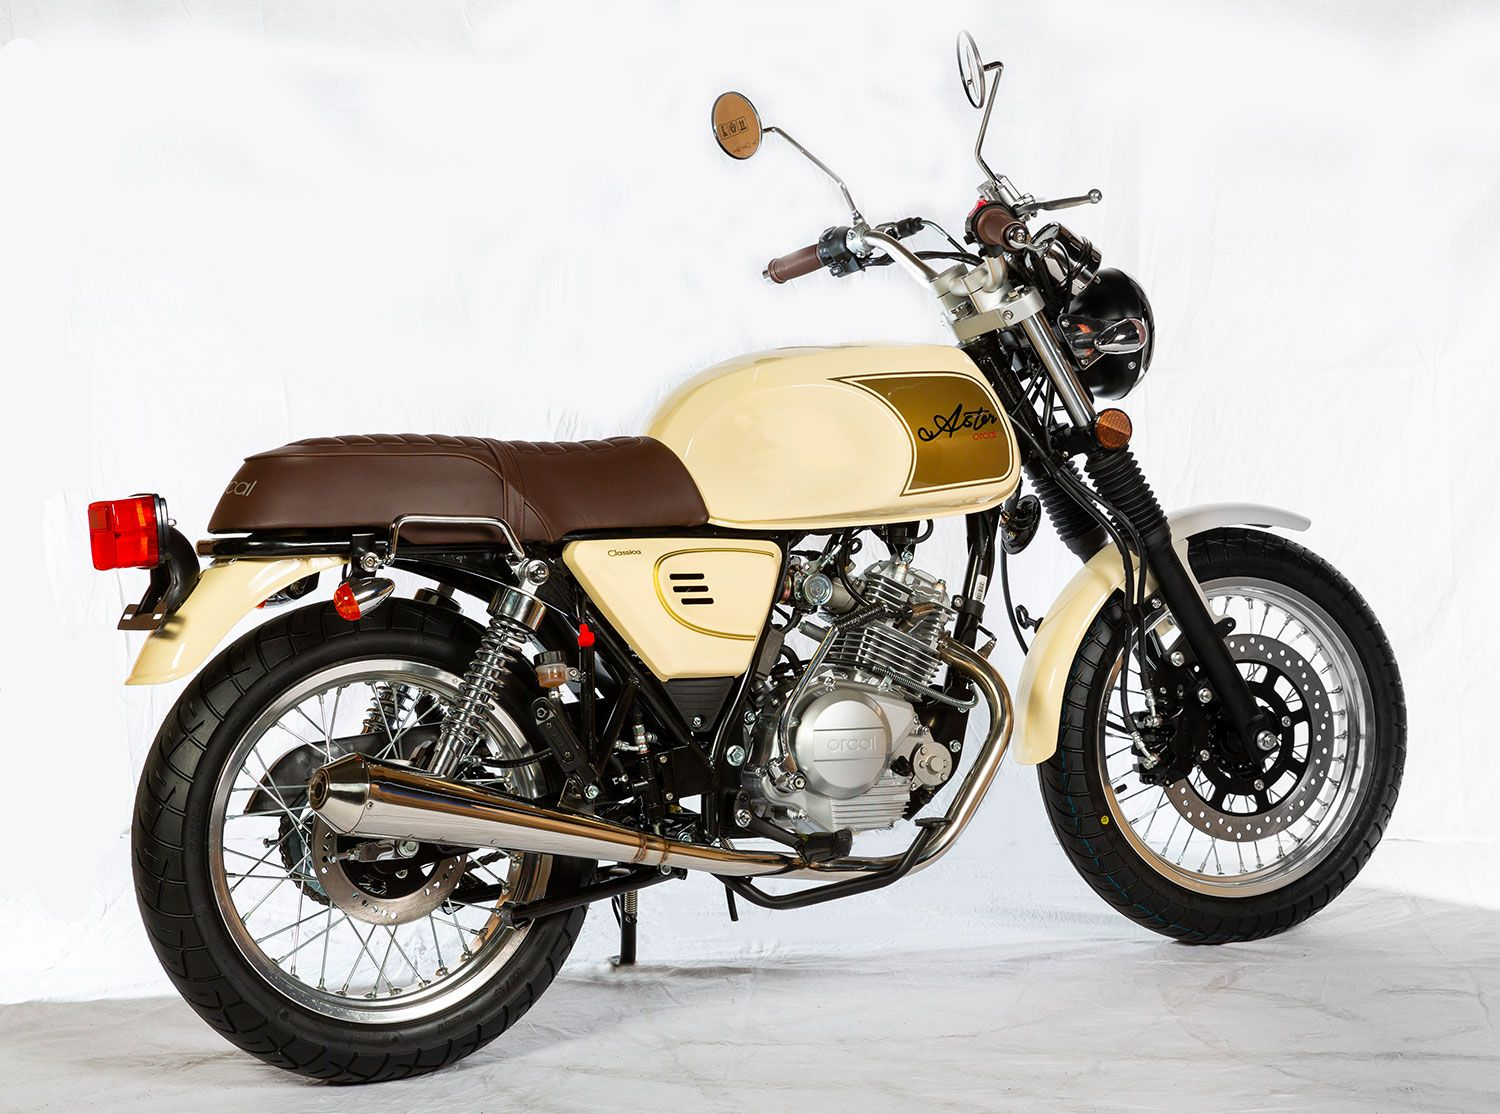 ORCAL ASTOR 125